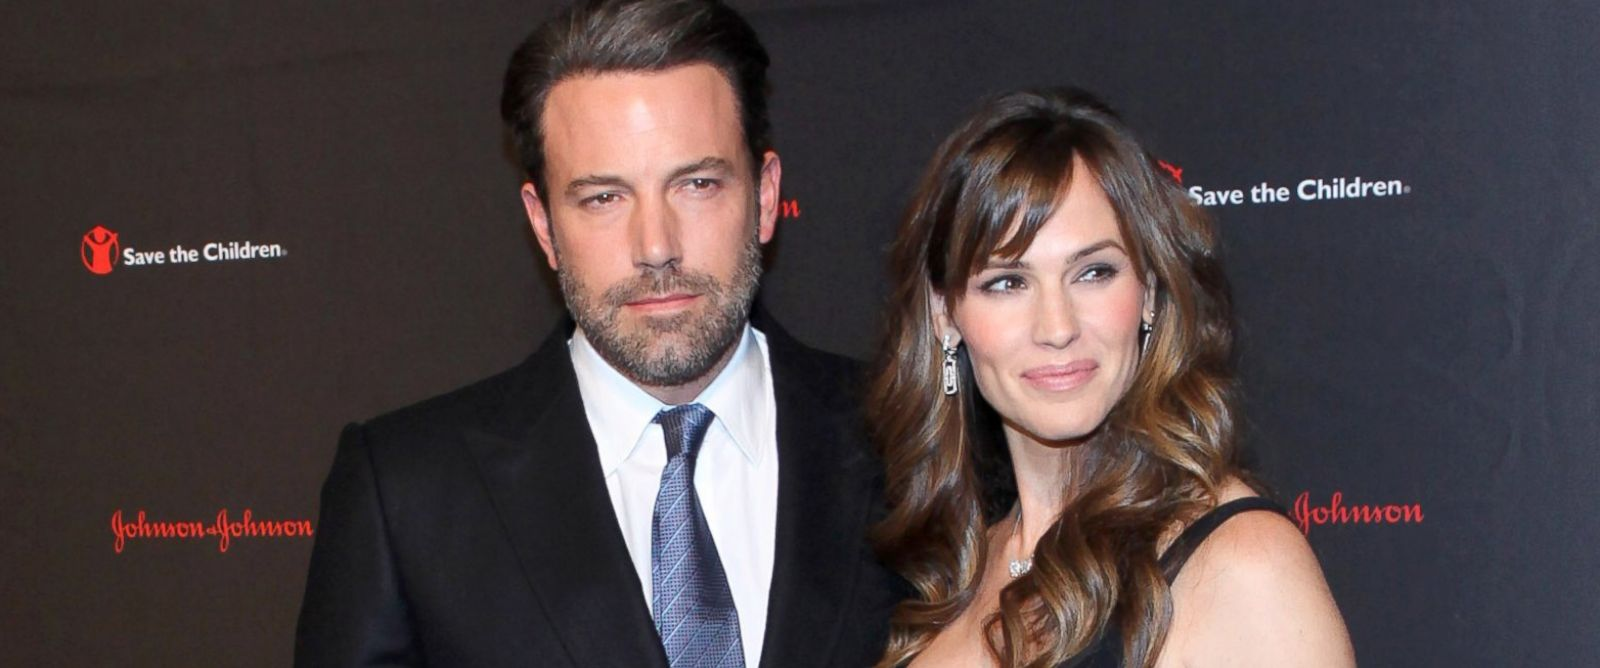 PHOTO: Ben Affleck and Jennifer Garner attend 2nd Annual Save the Children Illumination Gala at The Plaza Hotel, Nov. 19, 2014, in New York City.